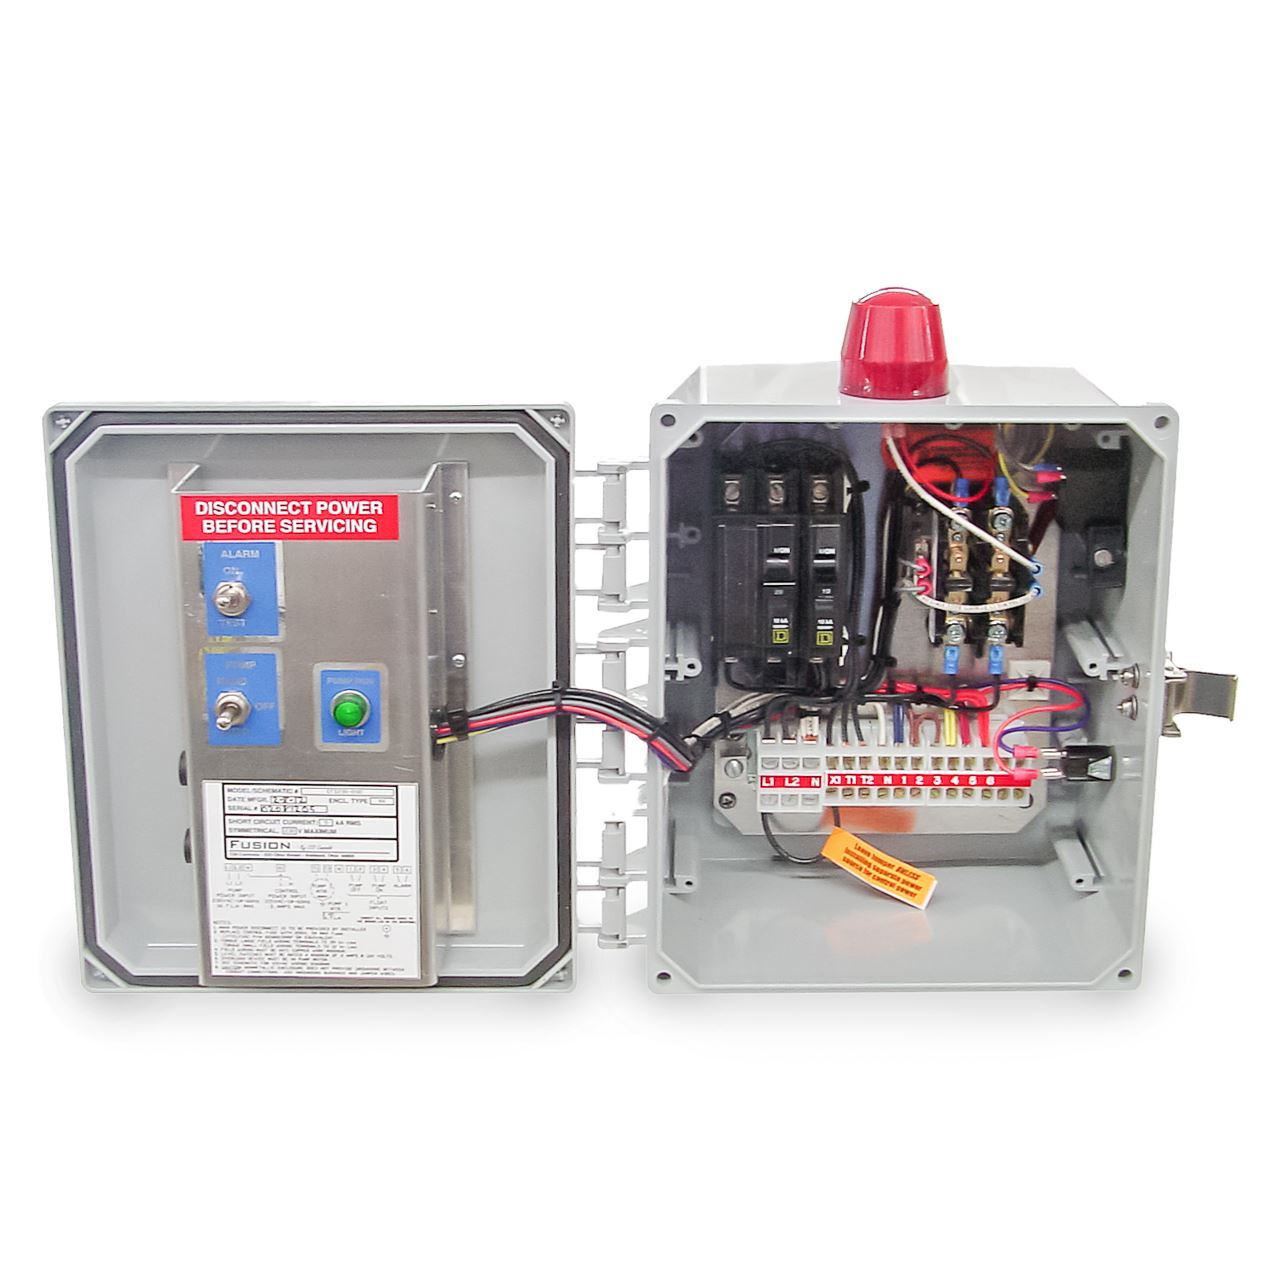 Wiring Diagram 230v Pump Fusion - Complete Wiring Diagrams •